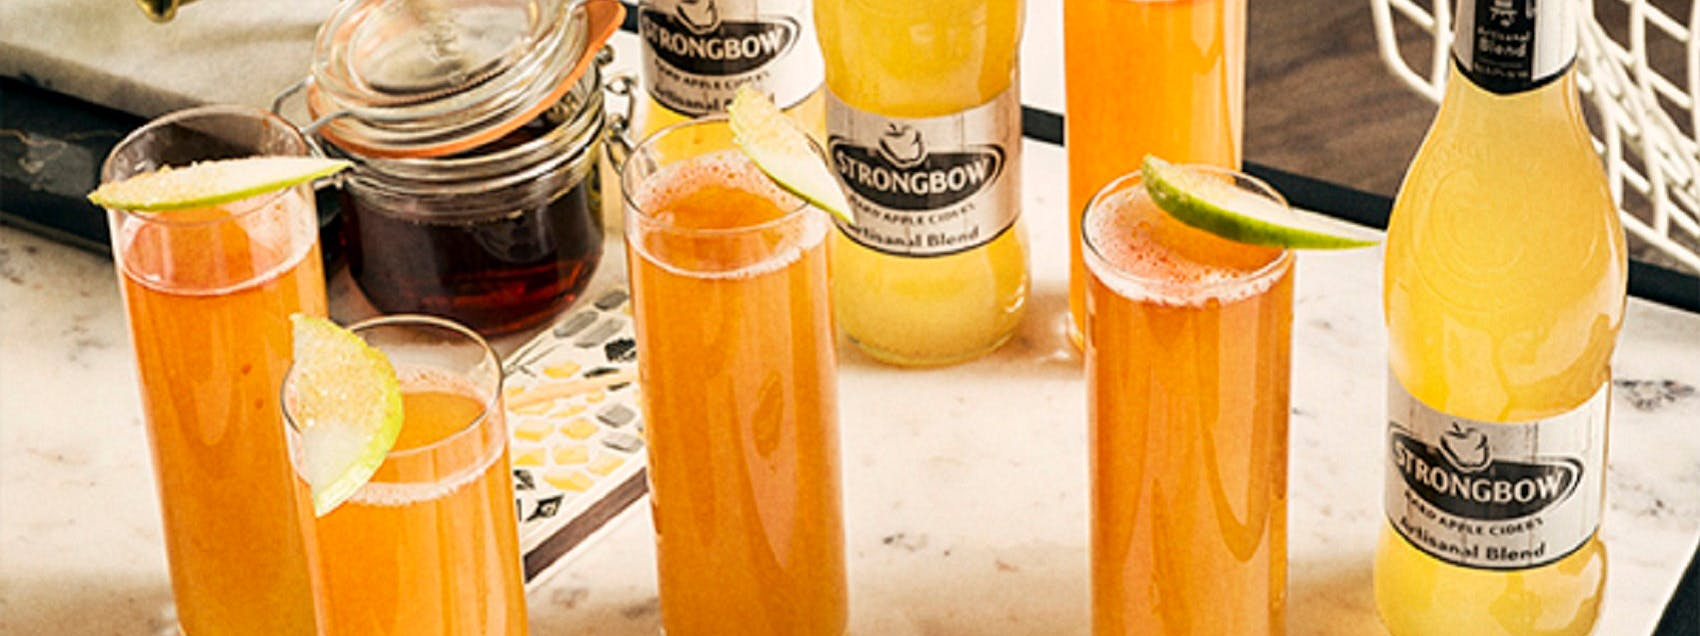 Strongbow Artisanal Blend Maple Mimosa